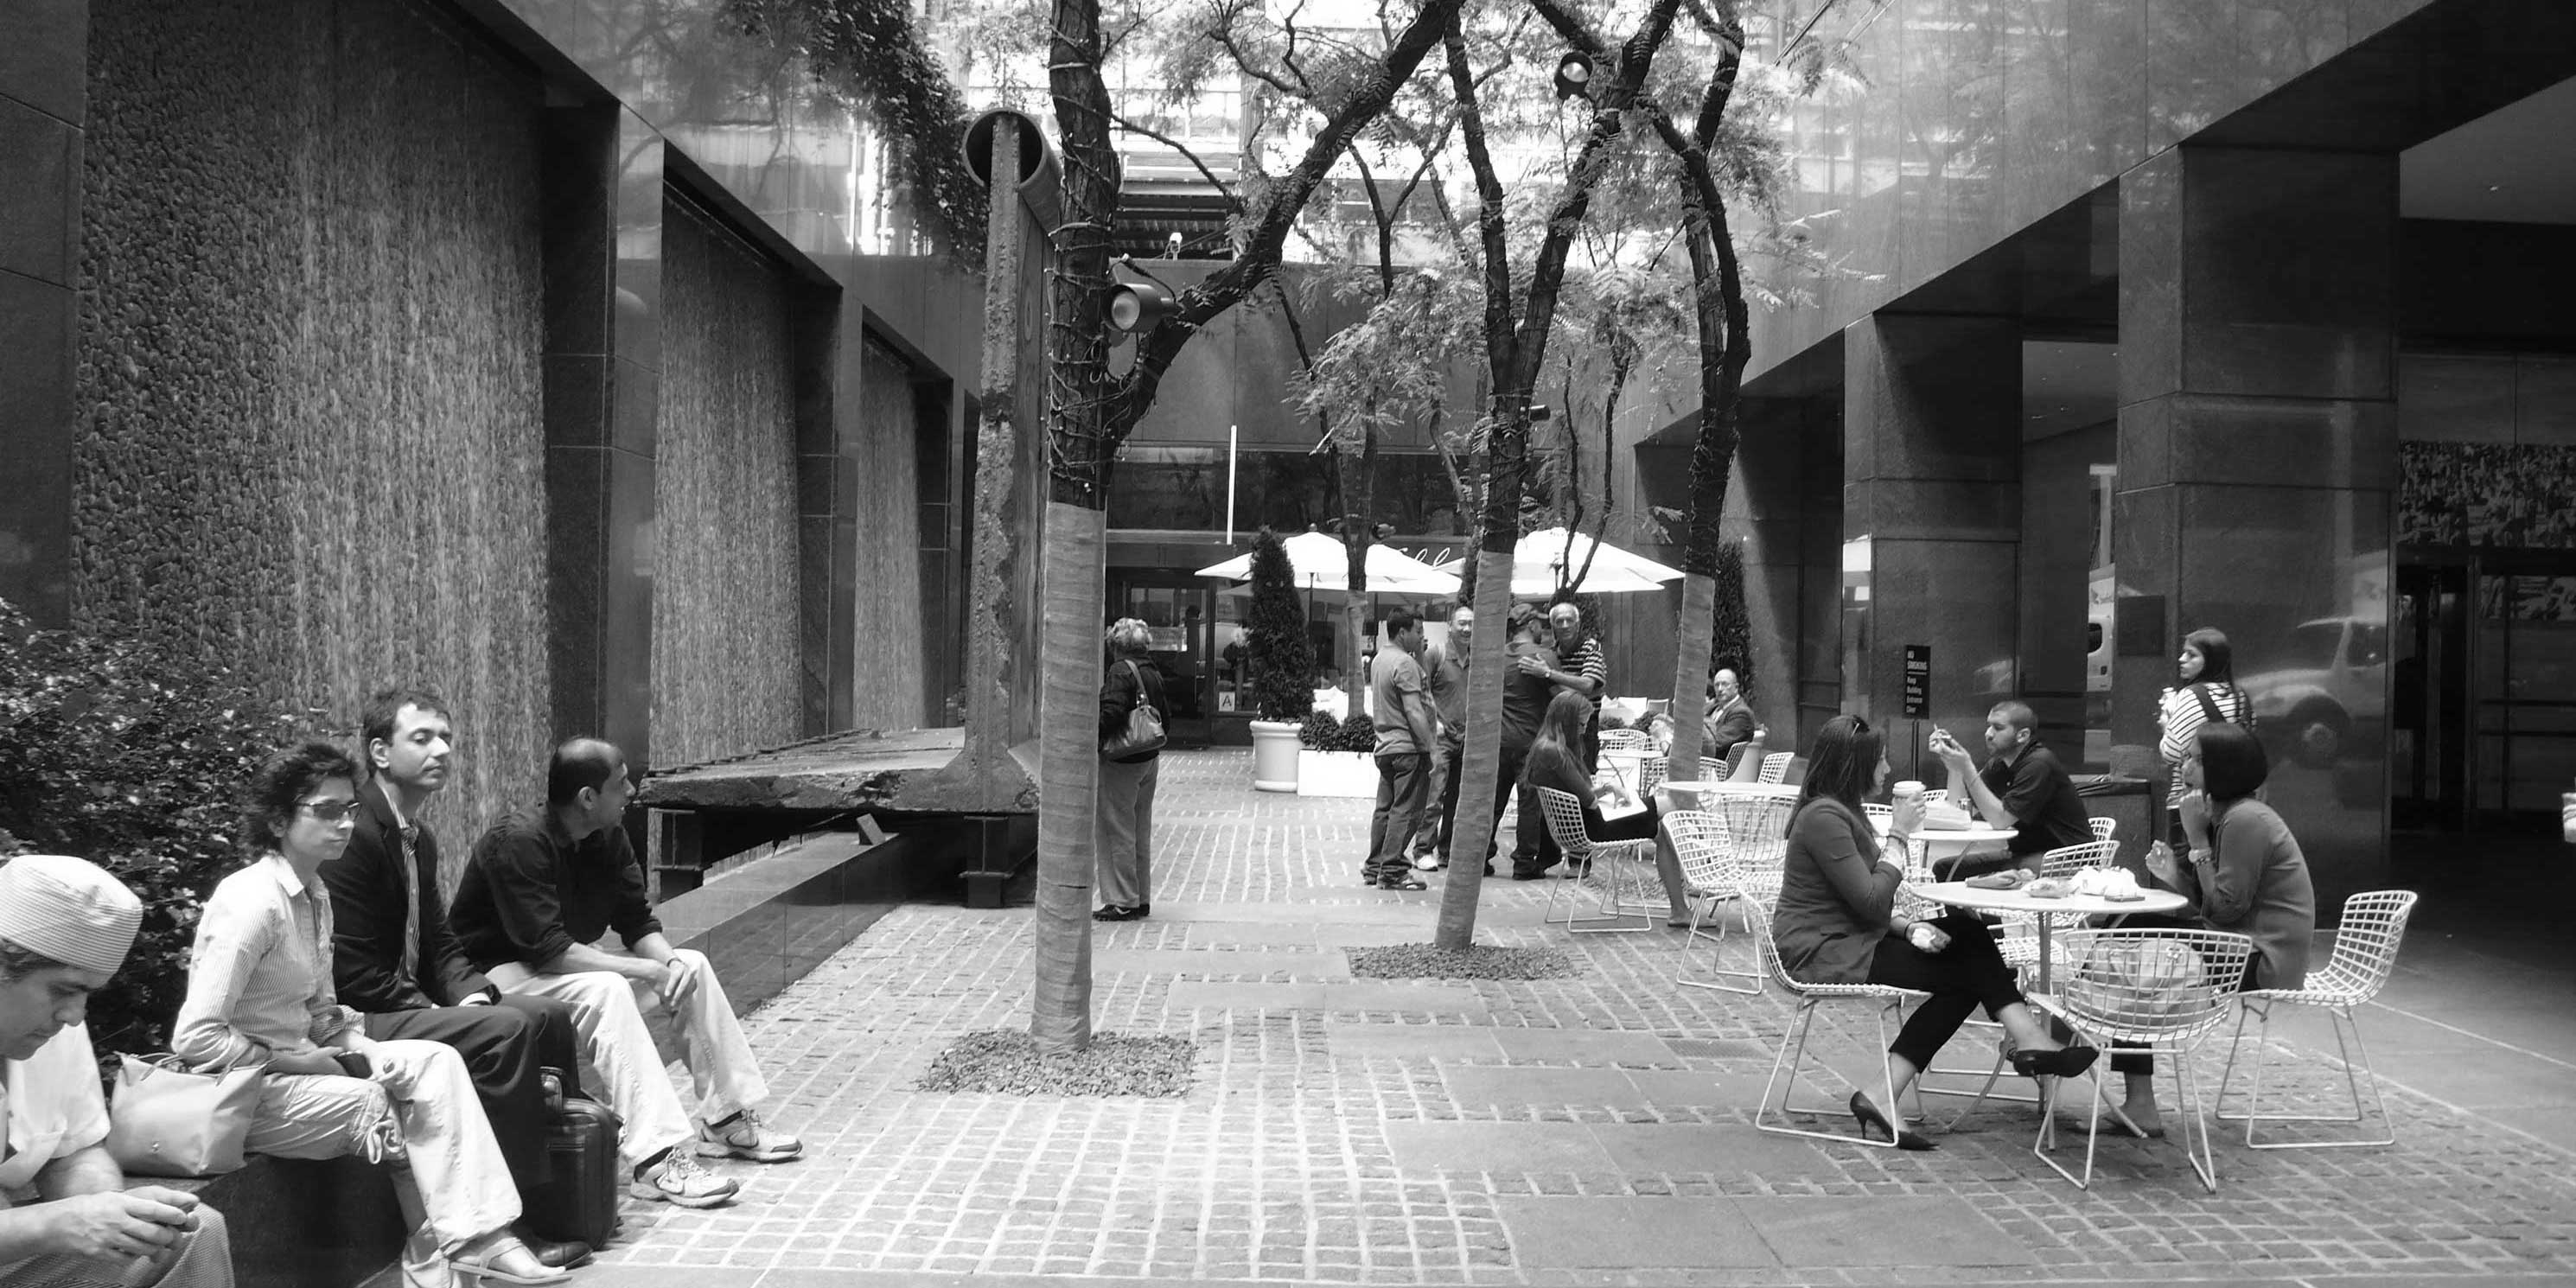 the outdoor public space at 520 Madison Avenue